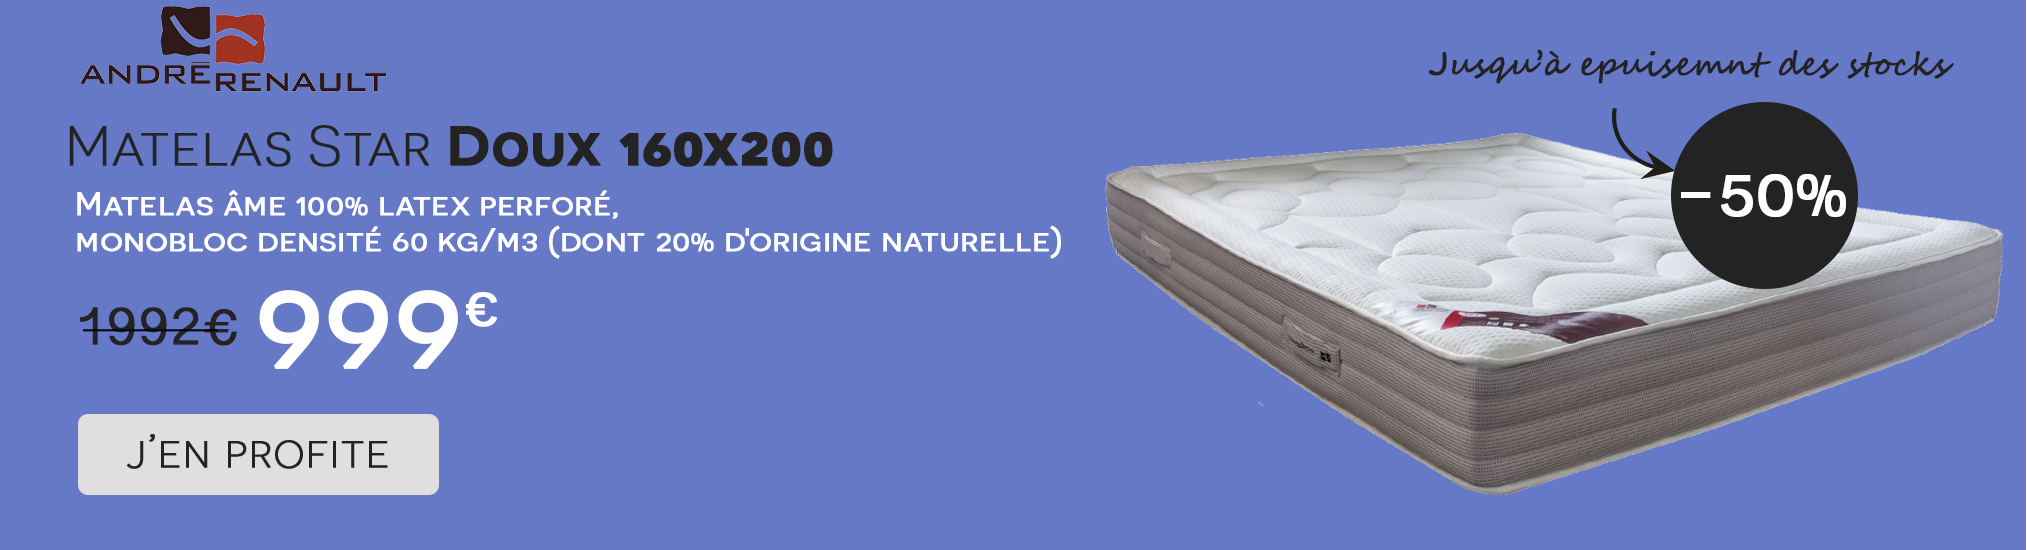 Vente Flash Star Doux Andre Renault 160x200